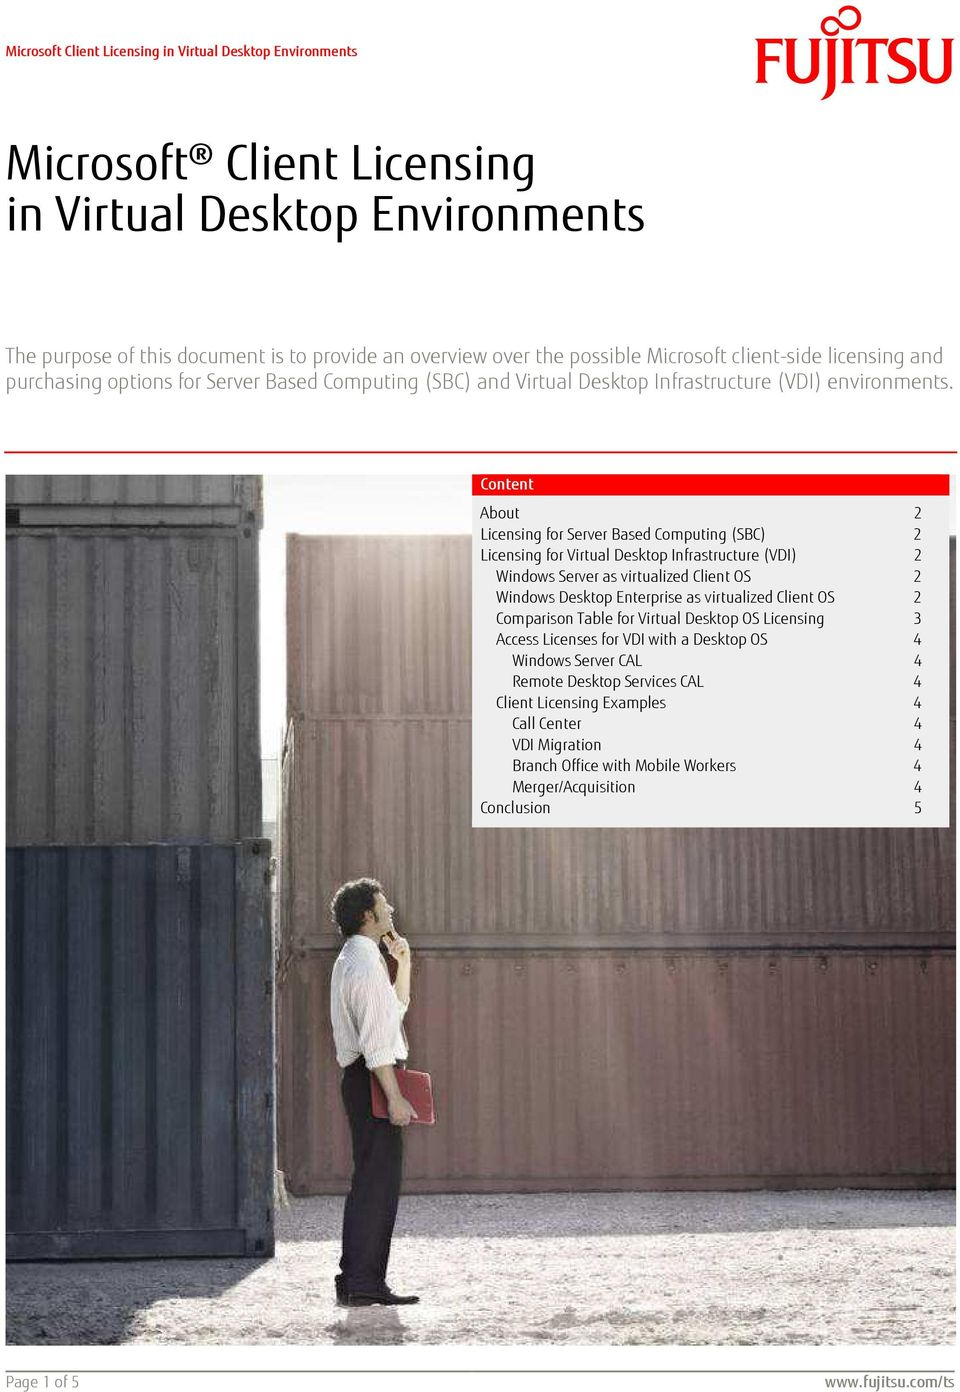 Microsoft Client Licensing in Virtual Desktop Environments - PDF